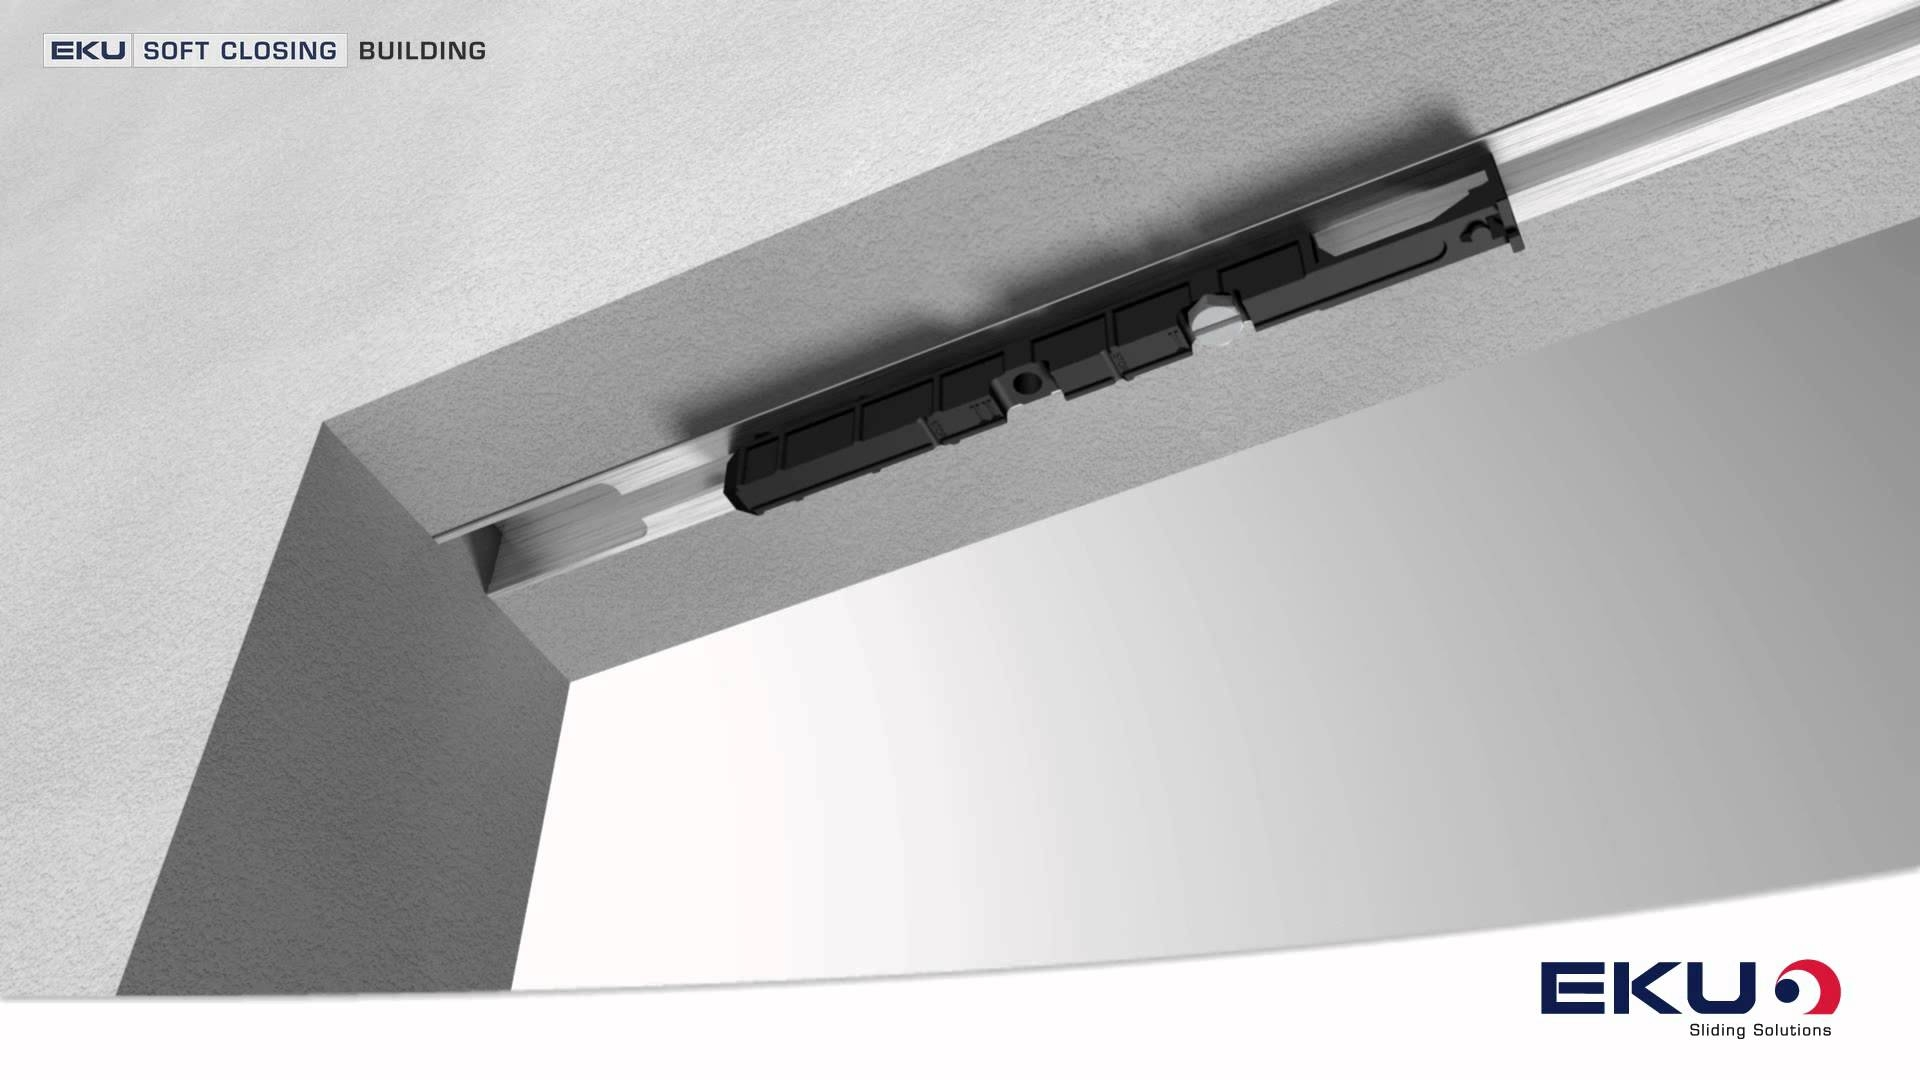 Hafele Mf Pocket Door Slide Systemhafele installation guide soft closing sliding hardware eku